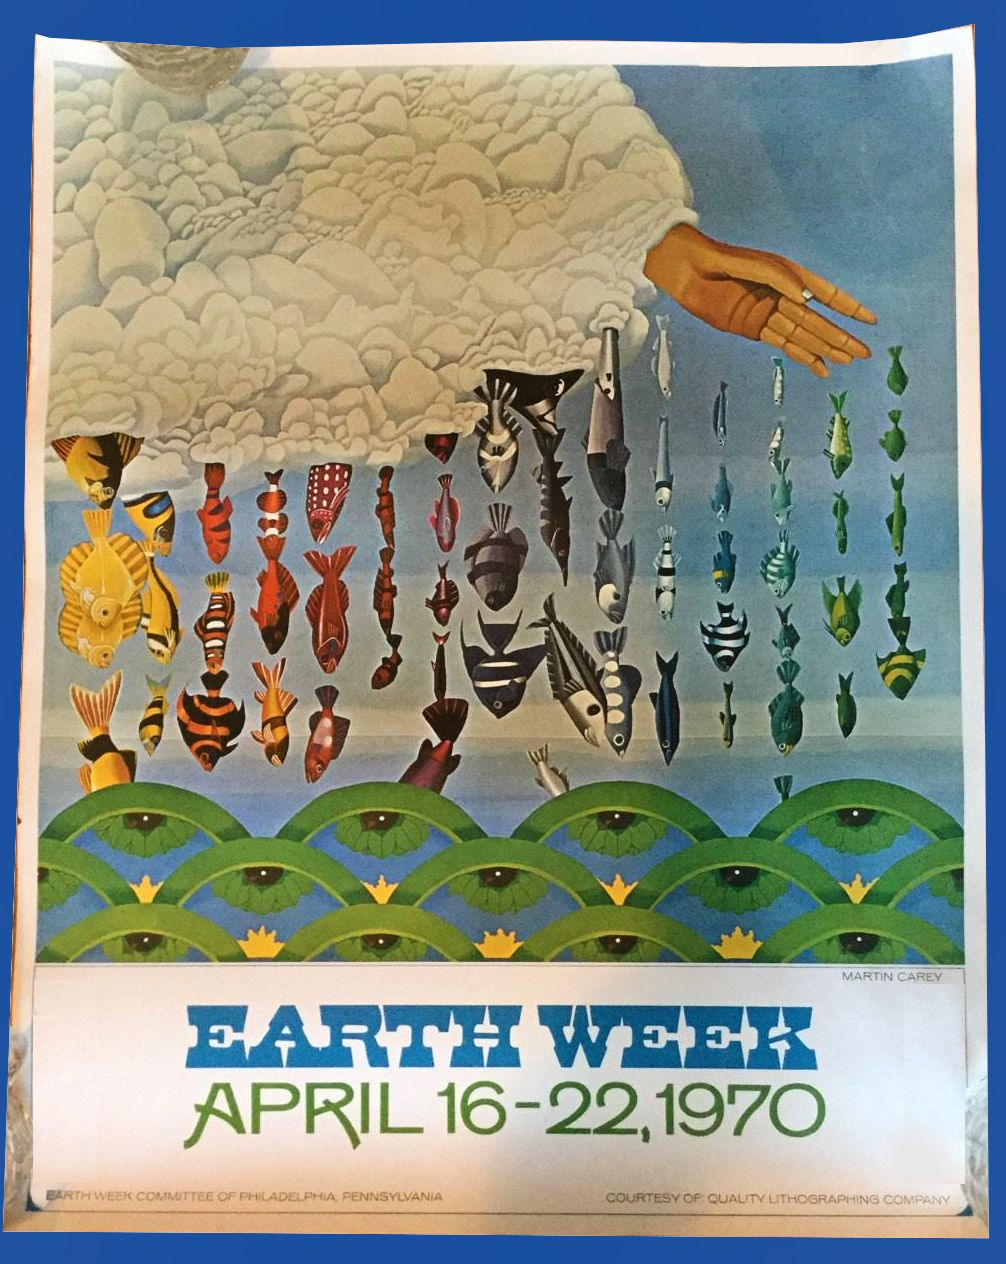 Earth Week 1970 Poster - found on ebay. | Hippie culture, Earth week,  Concert posters